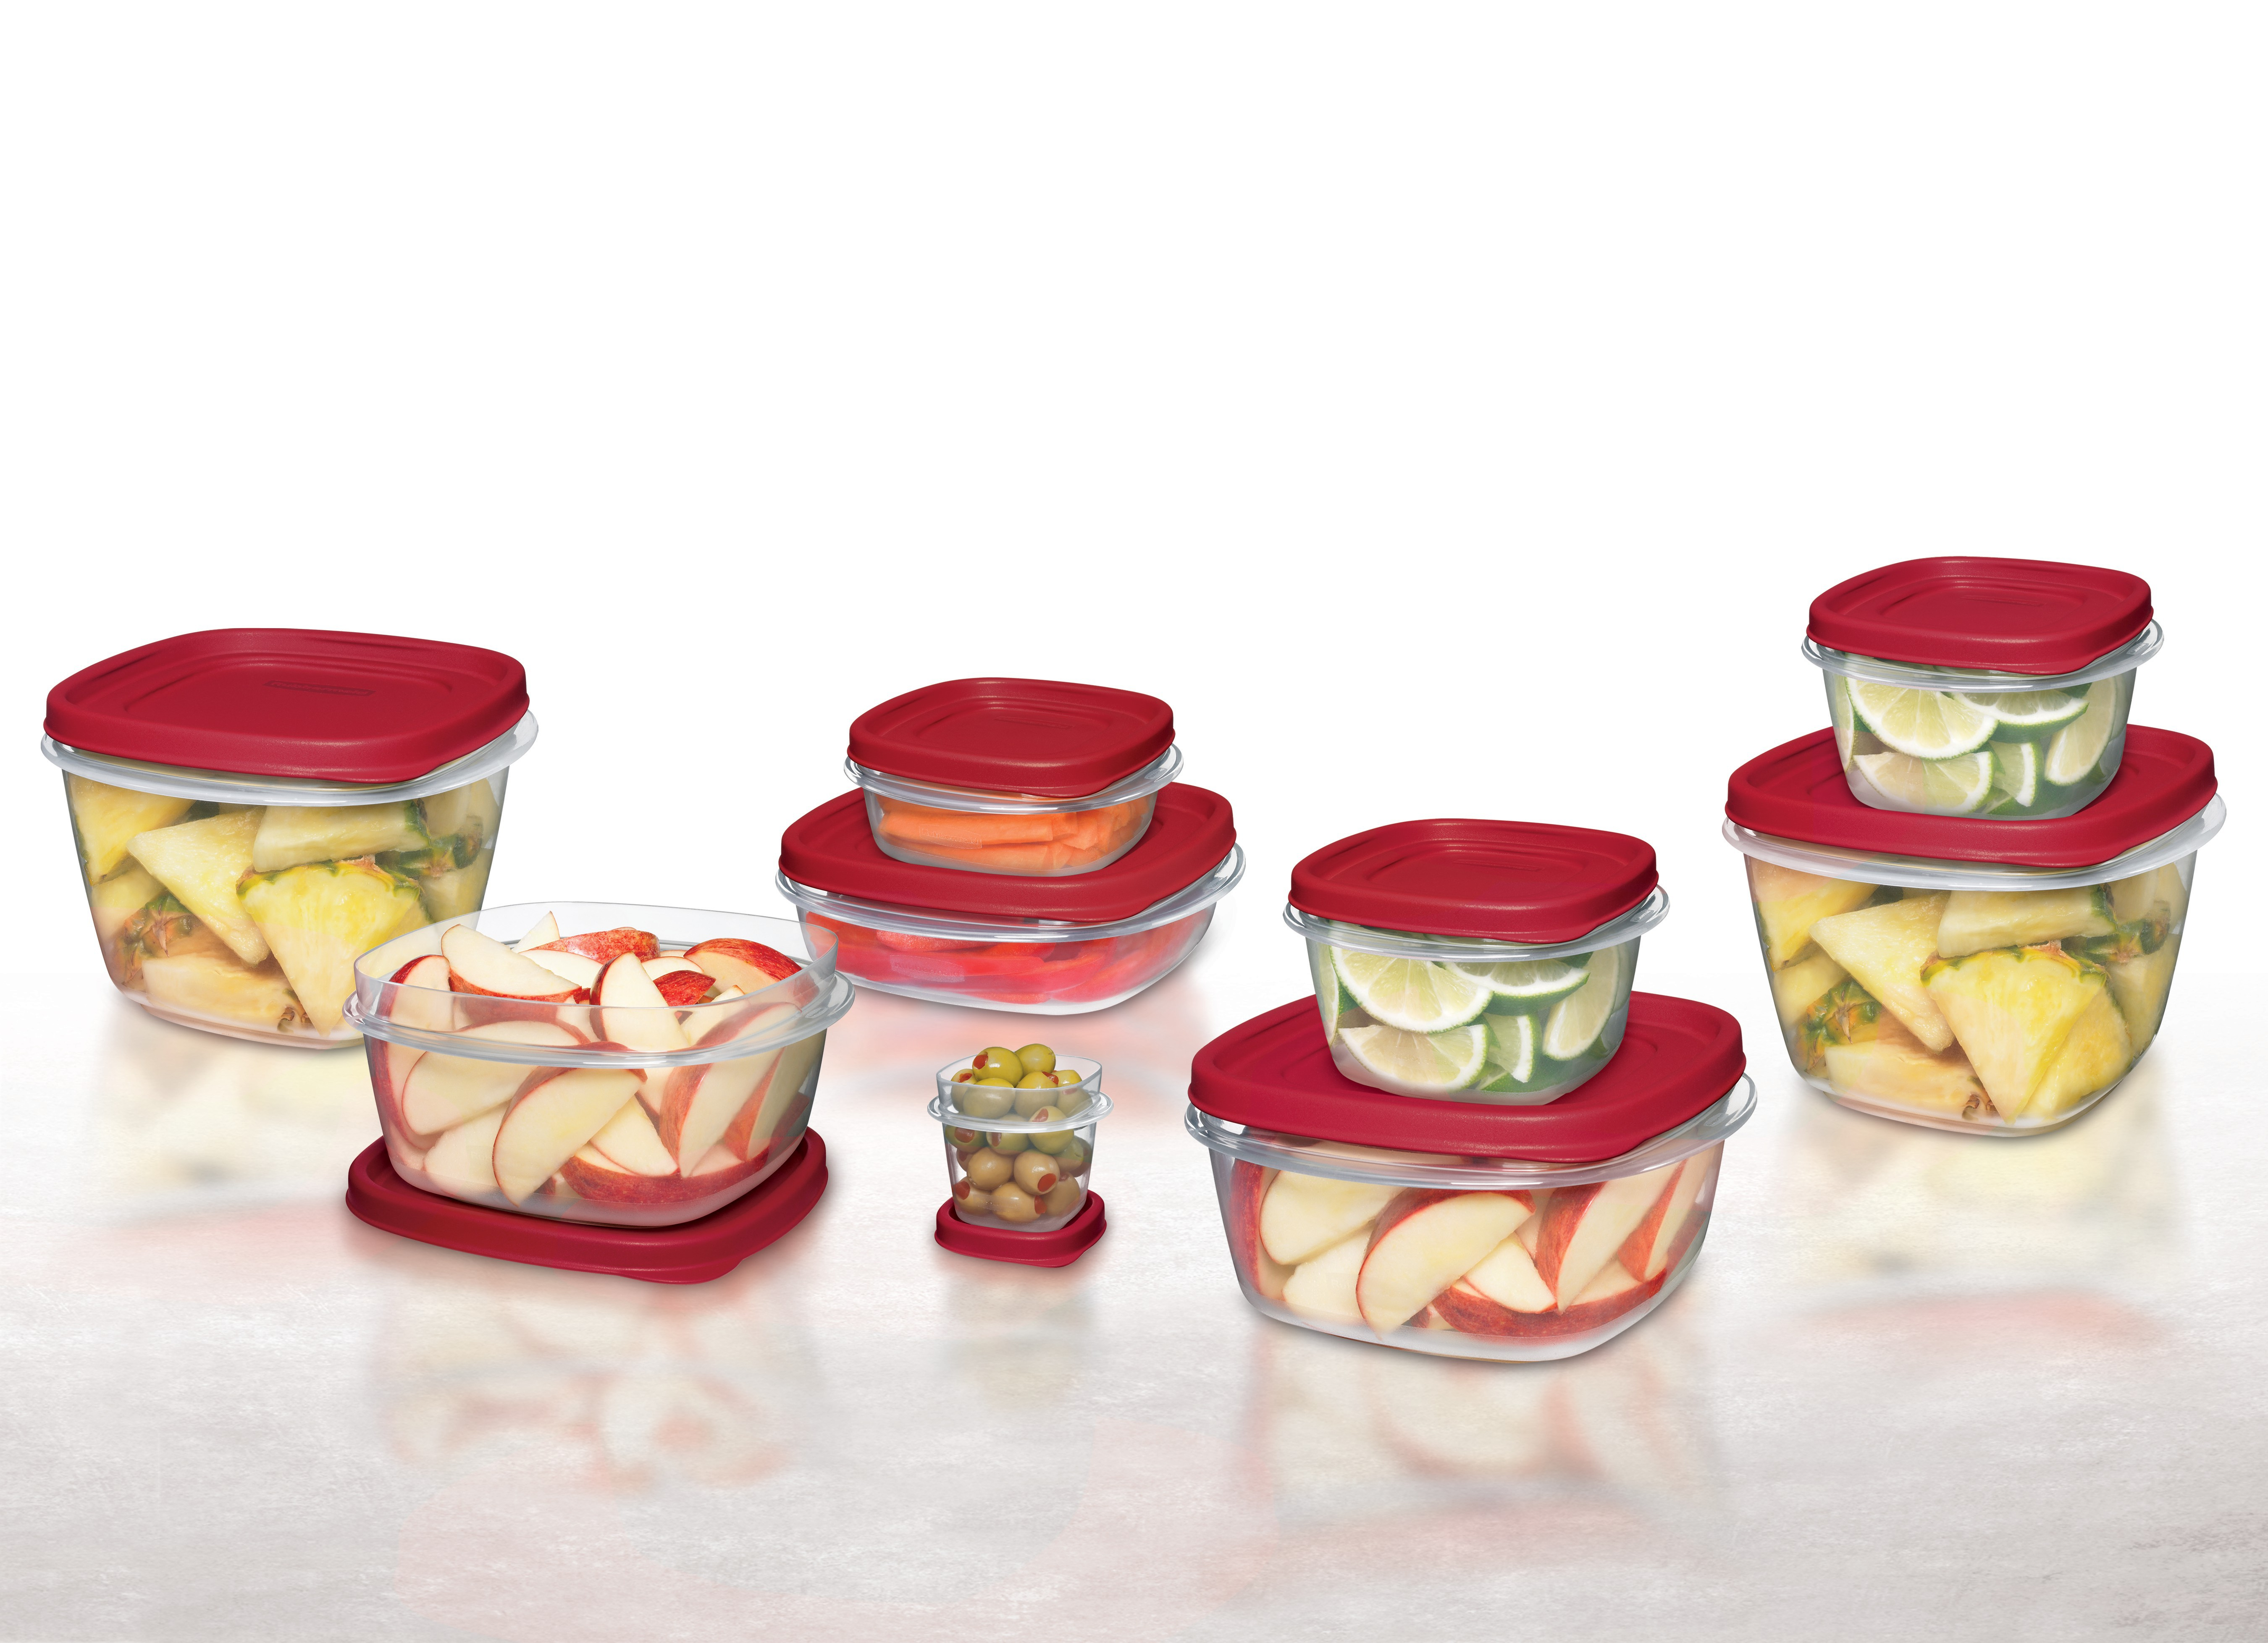 Charmant Rubbermaid Food Storage Containers With Easy Find Lids, 24 Piece Set    Walmart.com